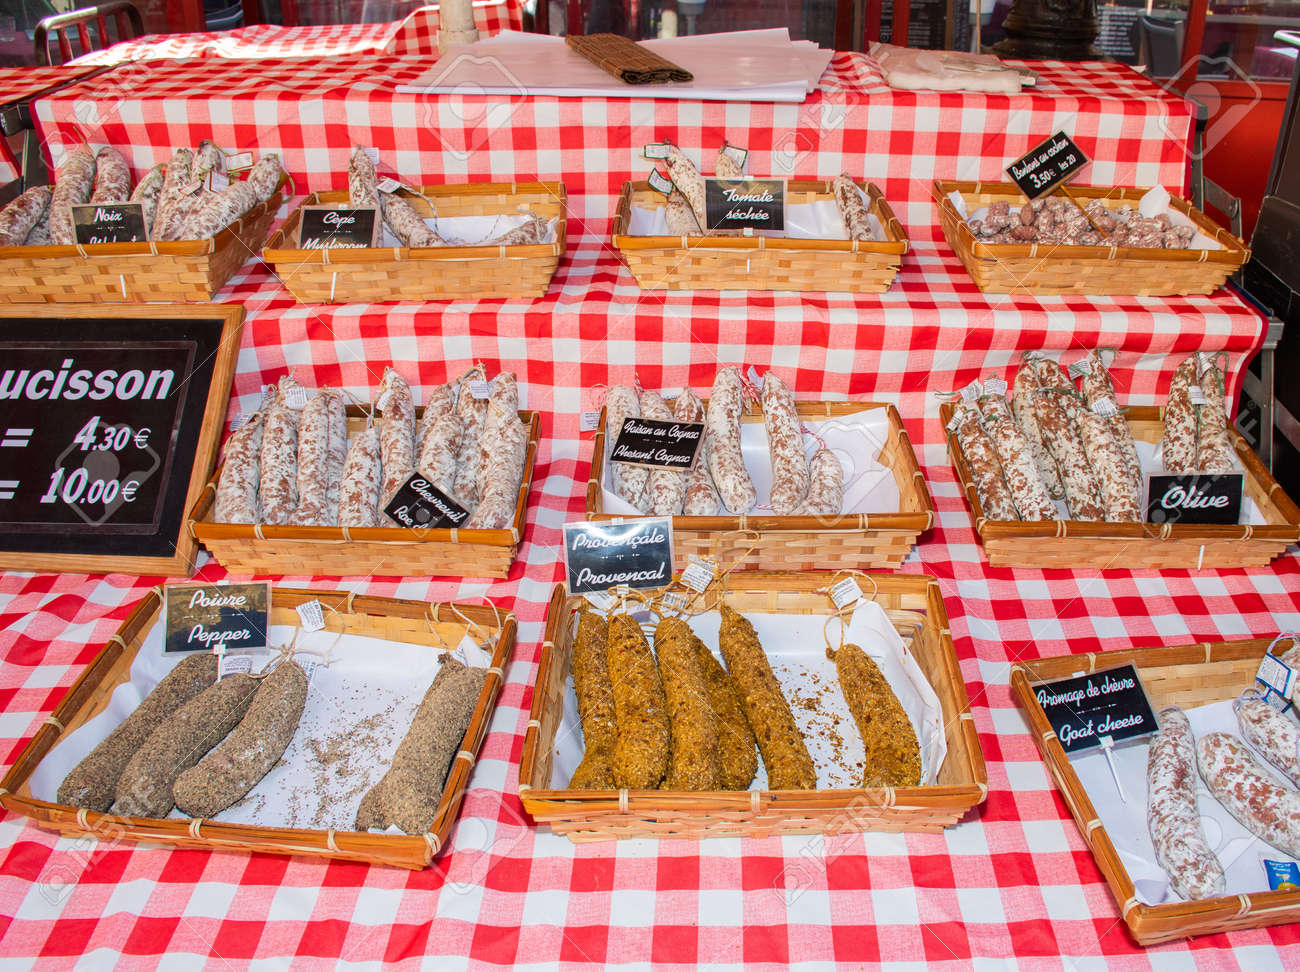 Saucissons for sale meaning sausages for sale in Nice outdoor market - 146941013